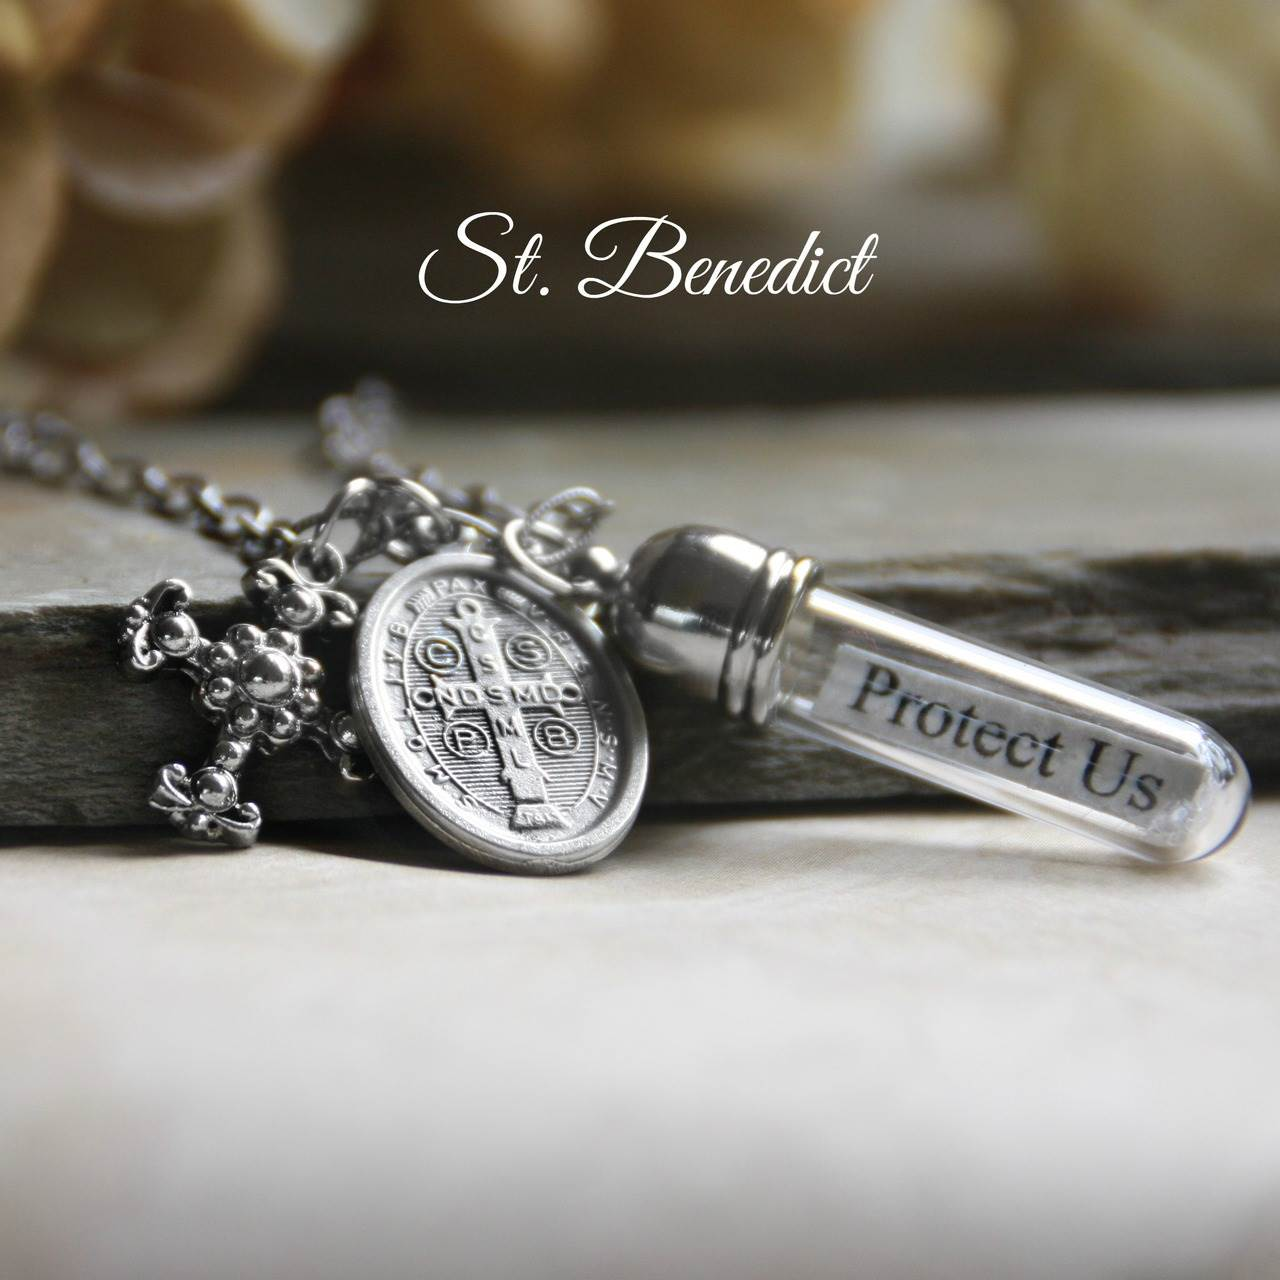 Protect Us St. Benedict Silver Message in a Bottle Necklace